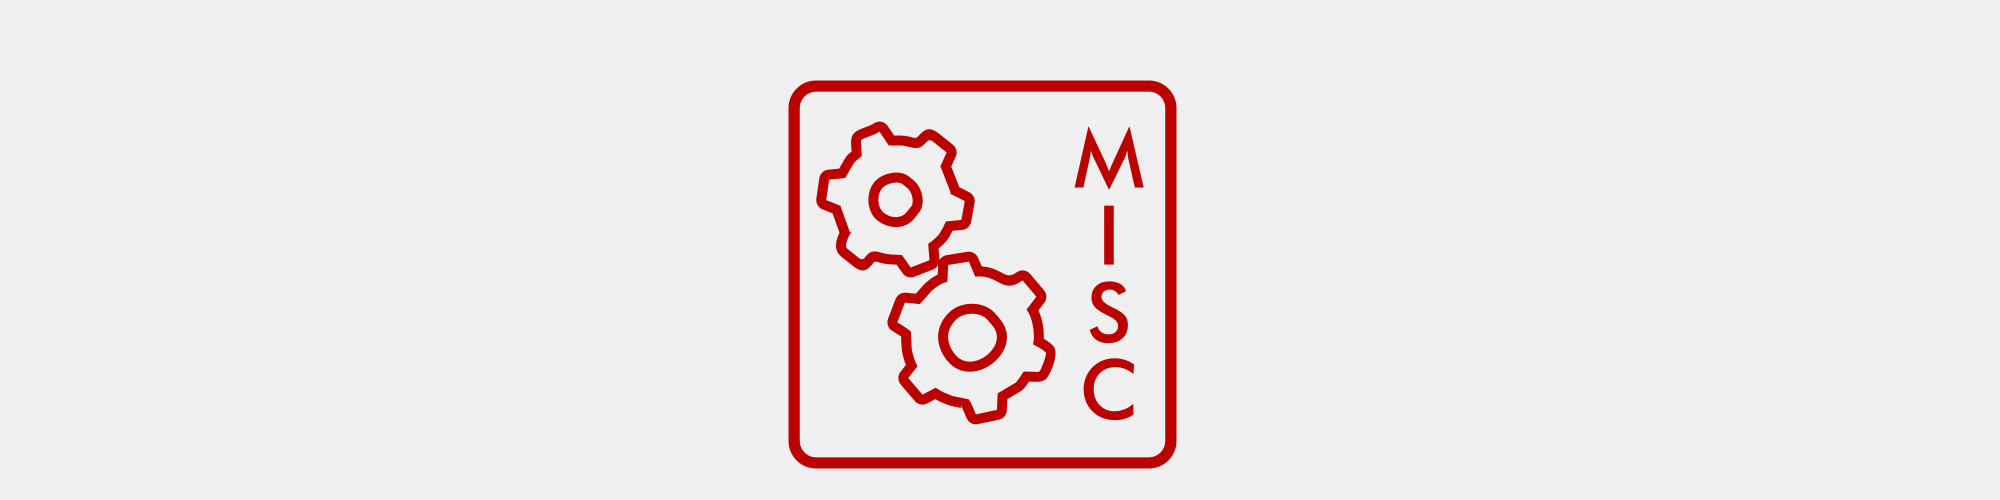 Misc. printed products icon